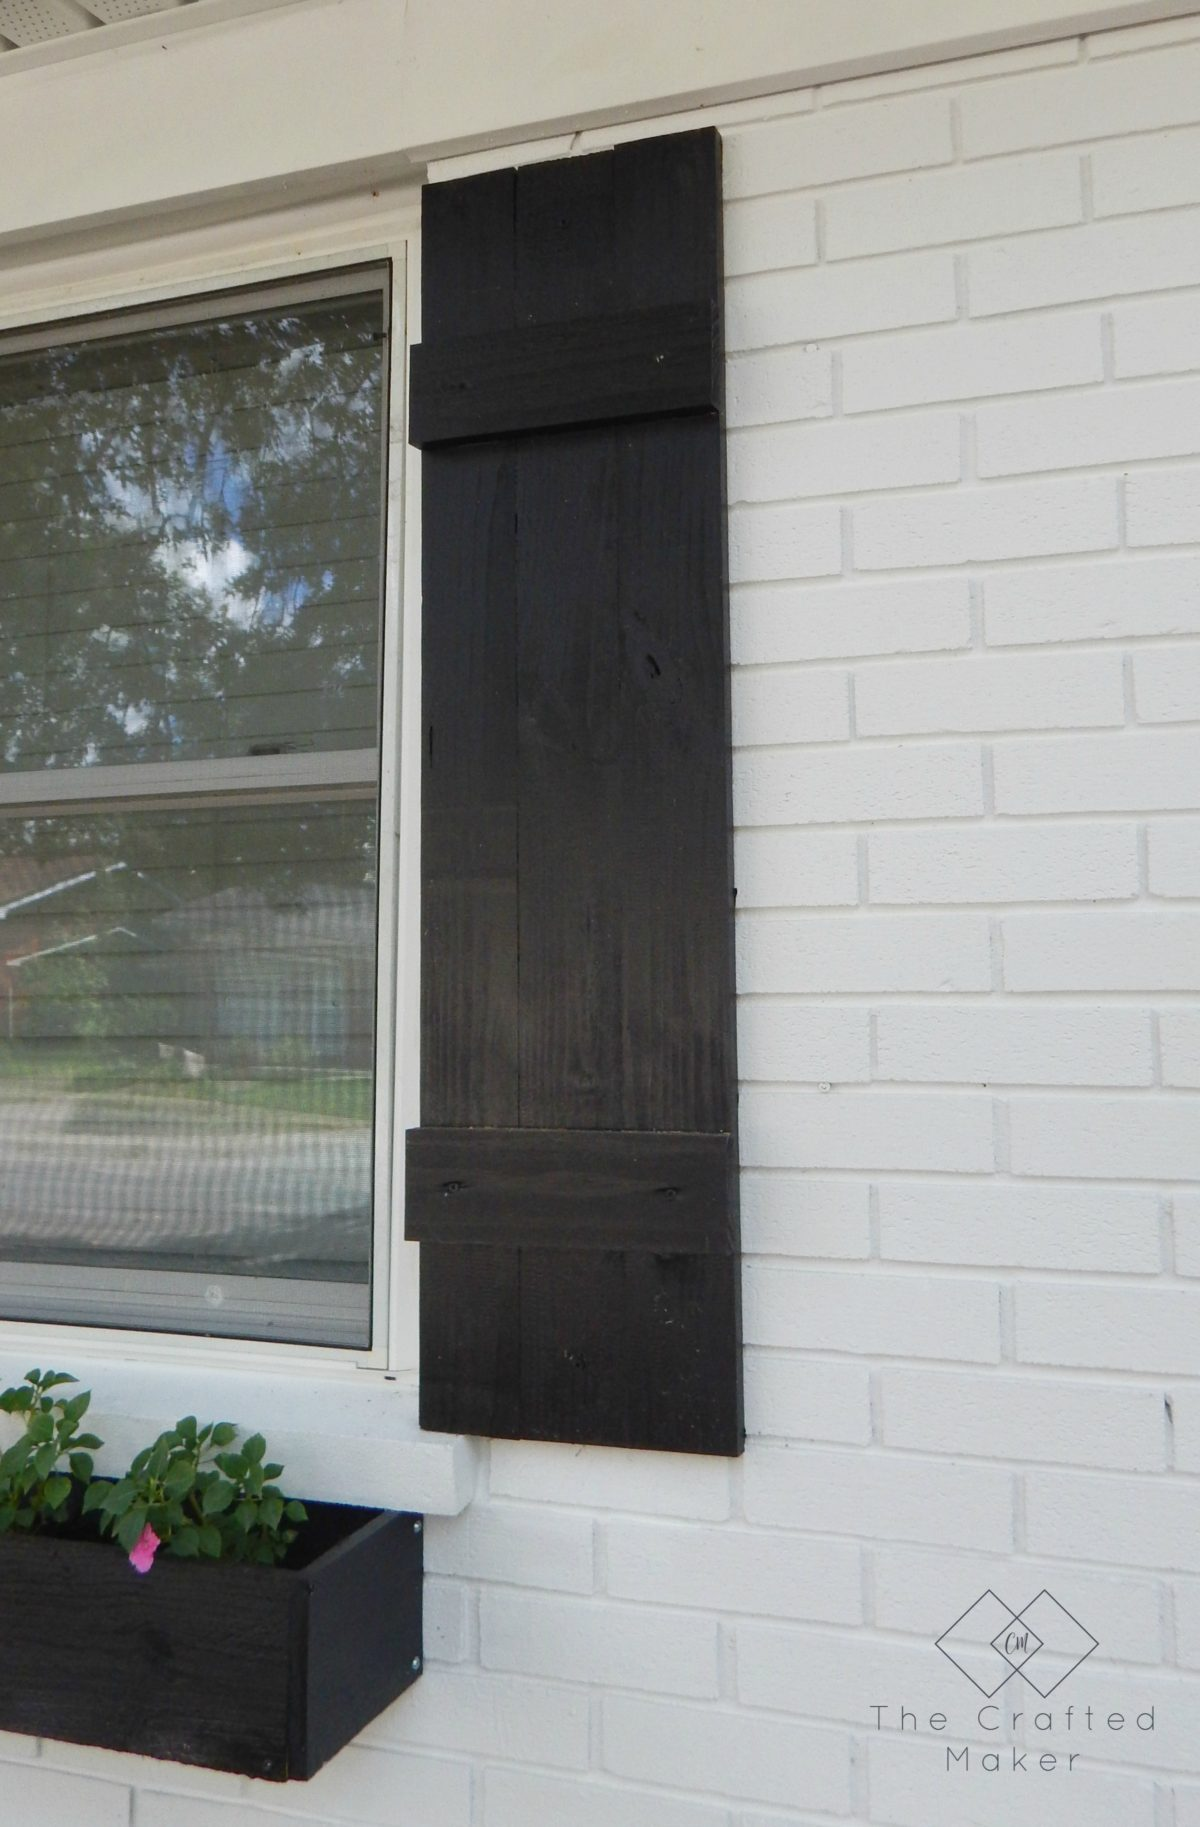 Give the exterior of your home an upgrade with these simple DIY shutters. They take very little time to make and will add curb appeal to your home.